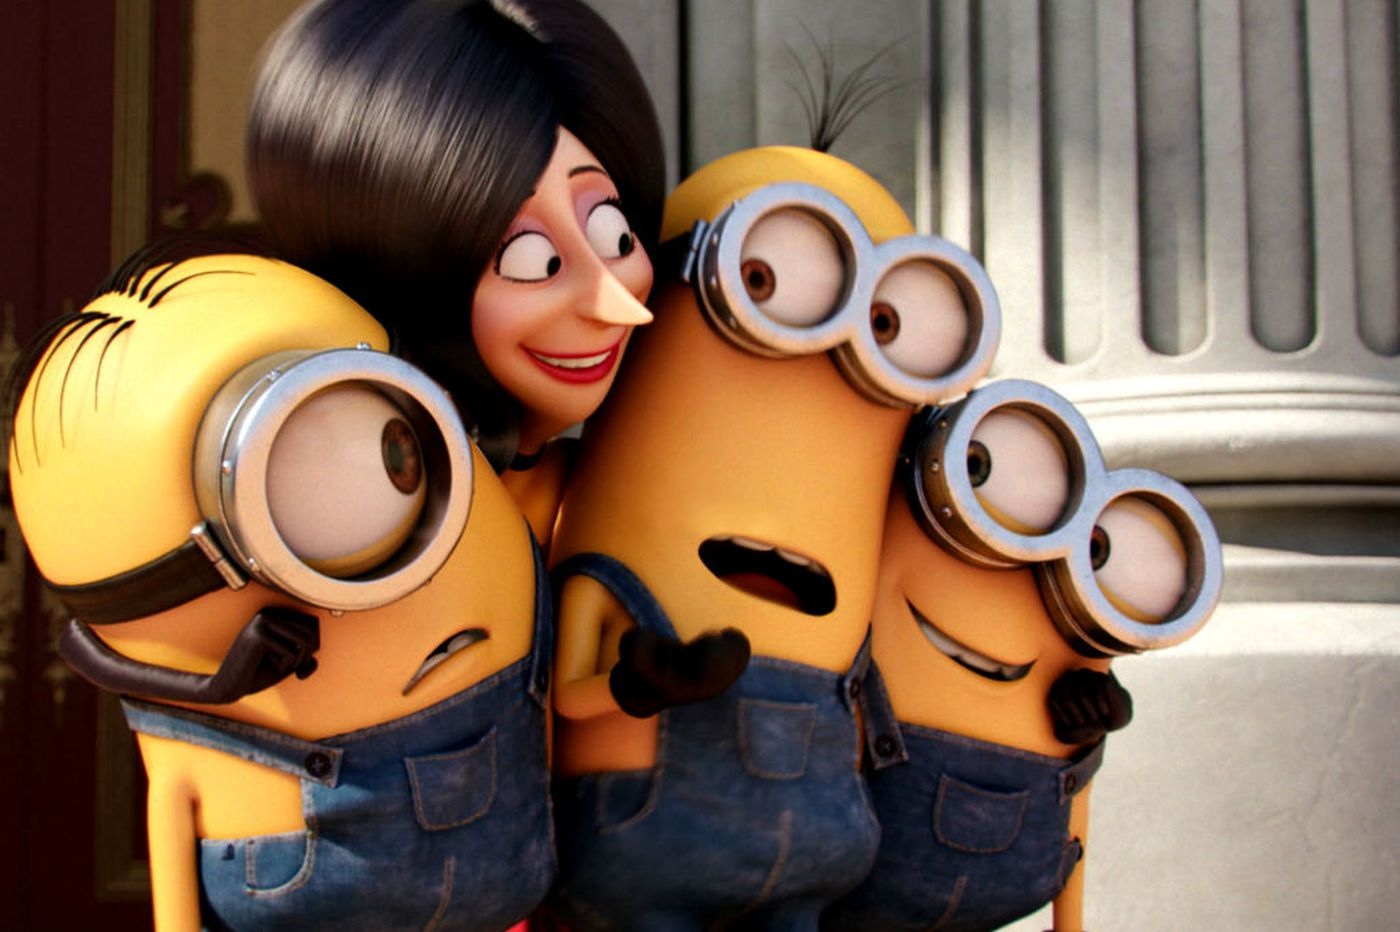 'Minions' throws all but the kitchen sink